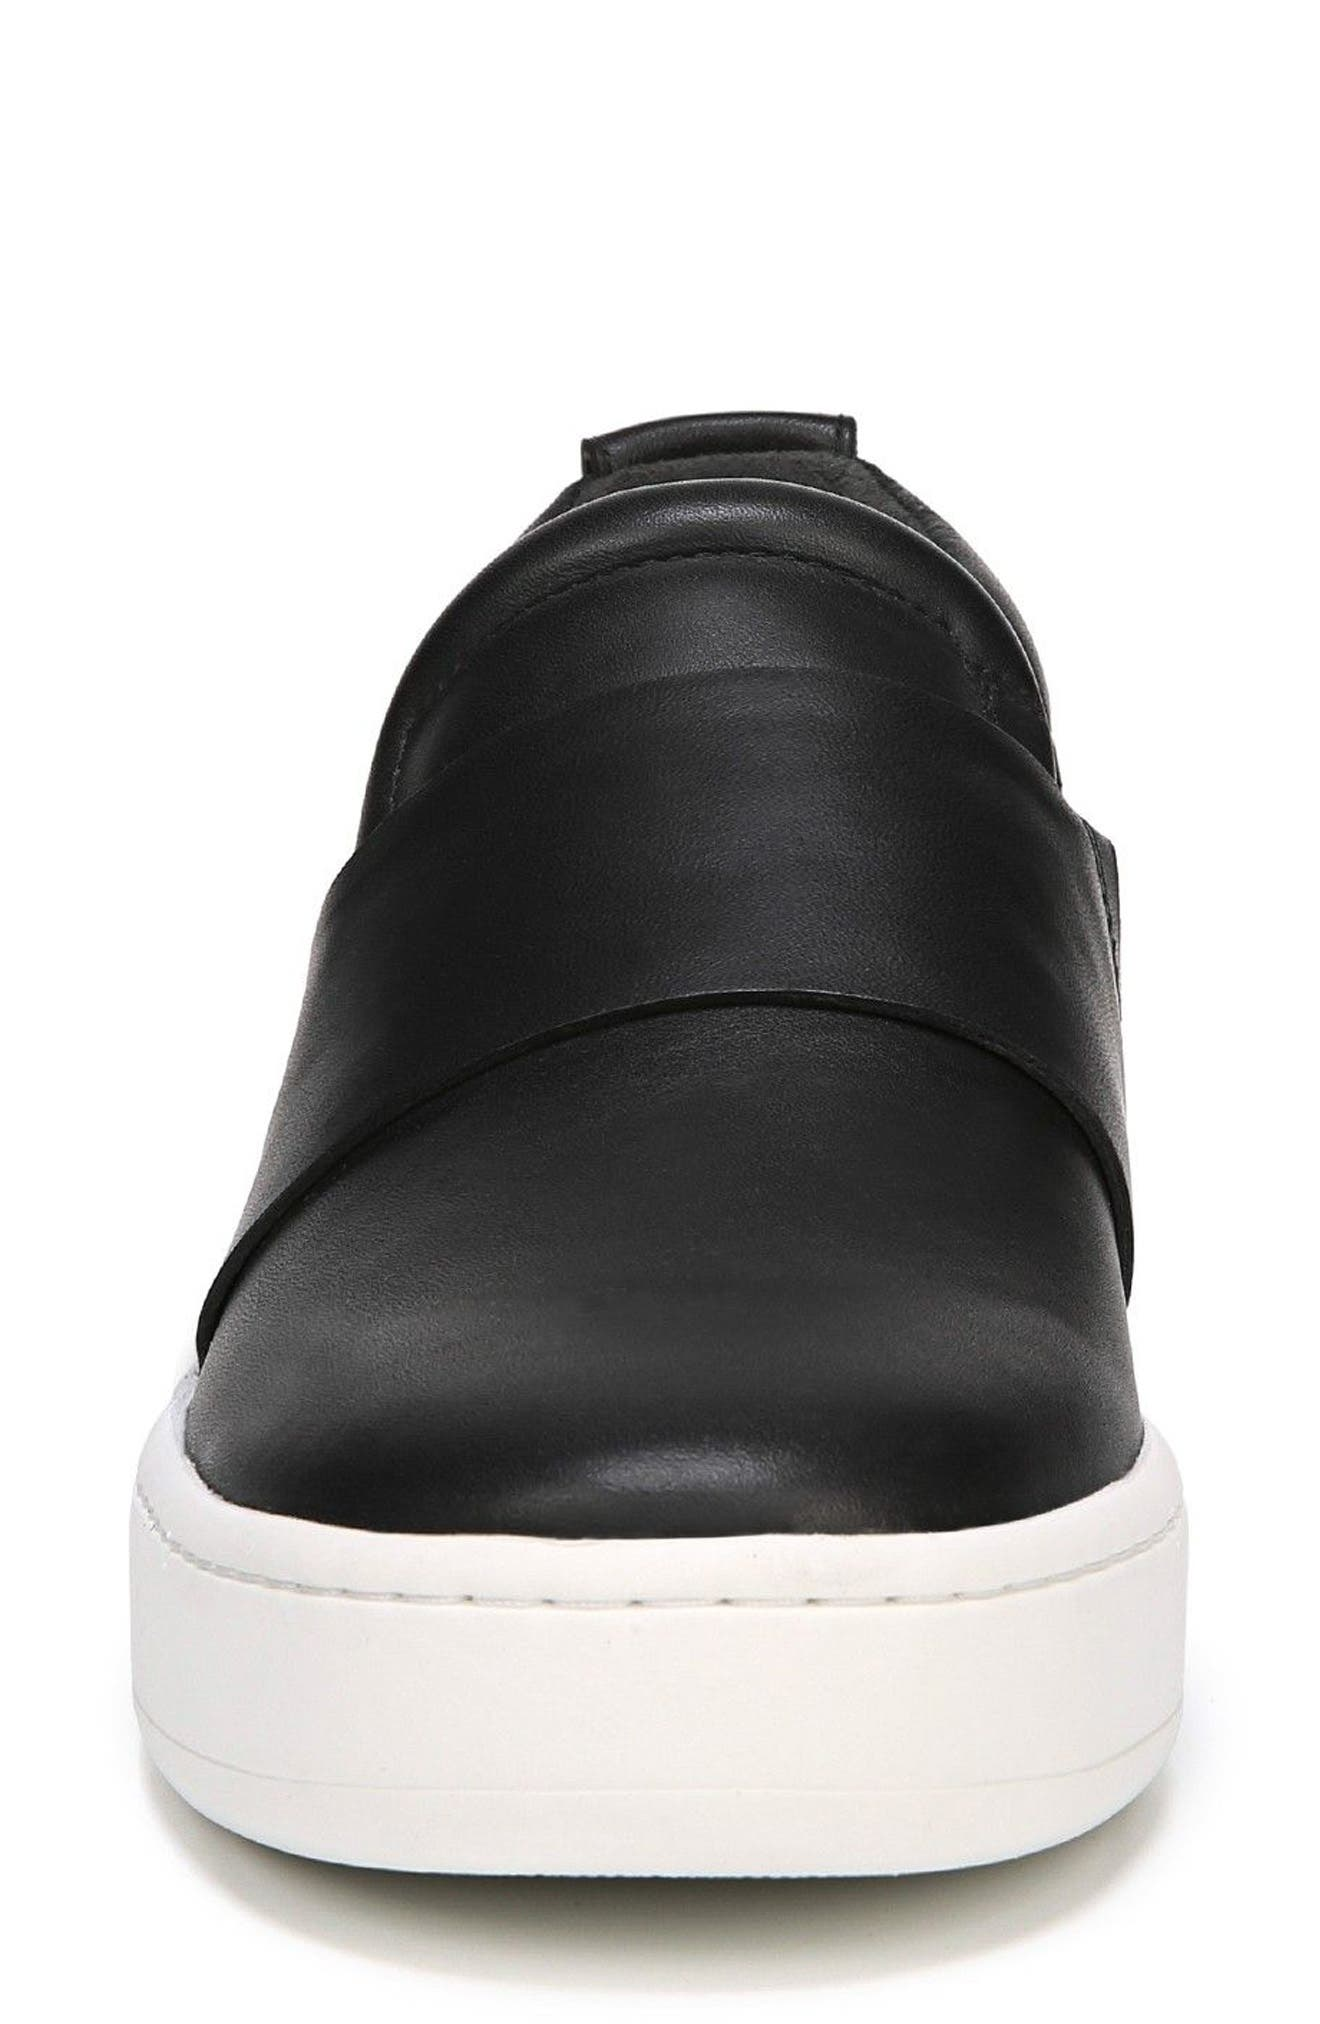 Ryder Slip-On Sneaker,                             Alternate thumbnail 4, color,                             BLACK LEATHER